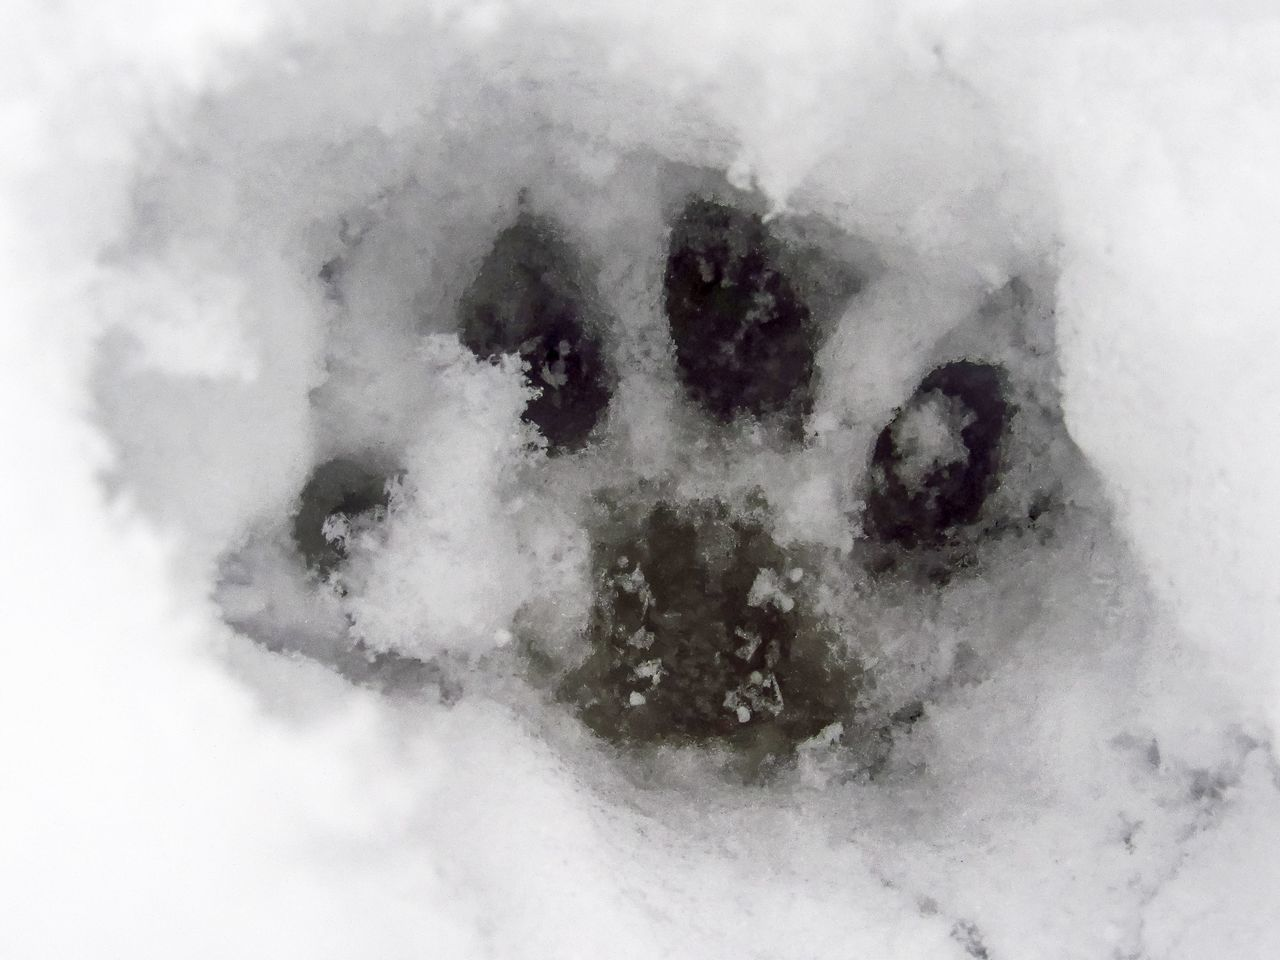 paw print Paw Print Print Animals In The Wild Paw Print In The Snow Snow Snow Prints Cat Paw Toes Tracks In The Snow Animal Themes Snow On The Ground EyeEm Selects Ice Foot Print Foot Prints Foot Prints In Snow Animal Track Cold Weather Winter Wonderland Cat Lovers Pets Designs Shapes And Forms Dog Child Childhood Human Body Part Close-up Children Only One Person